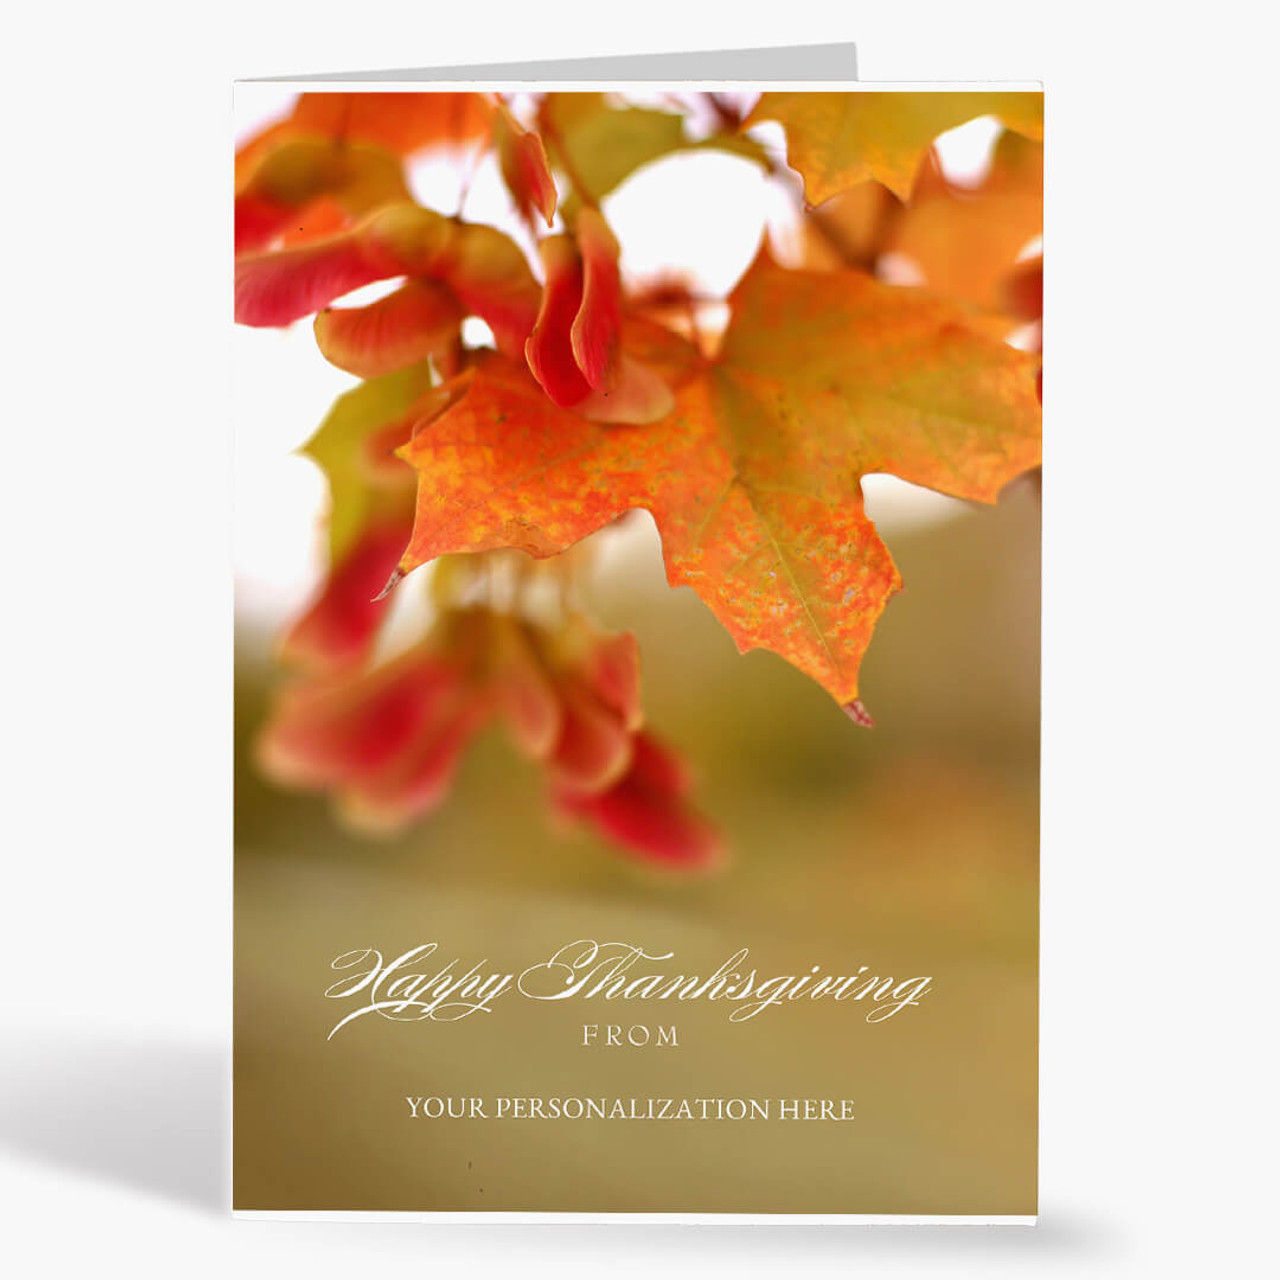 Autumn's Warmth Thanksgiving Card